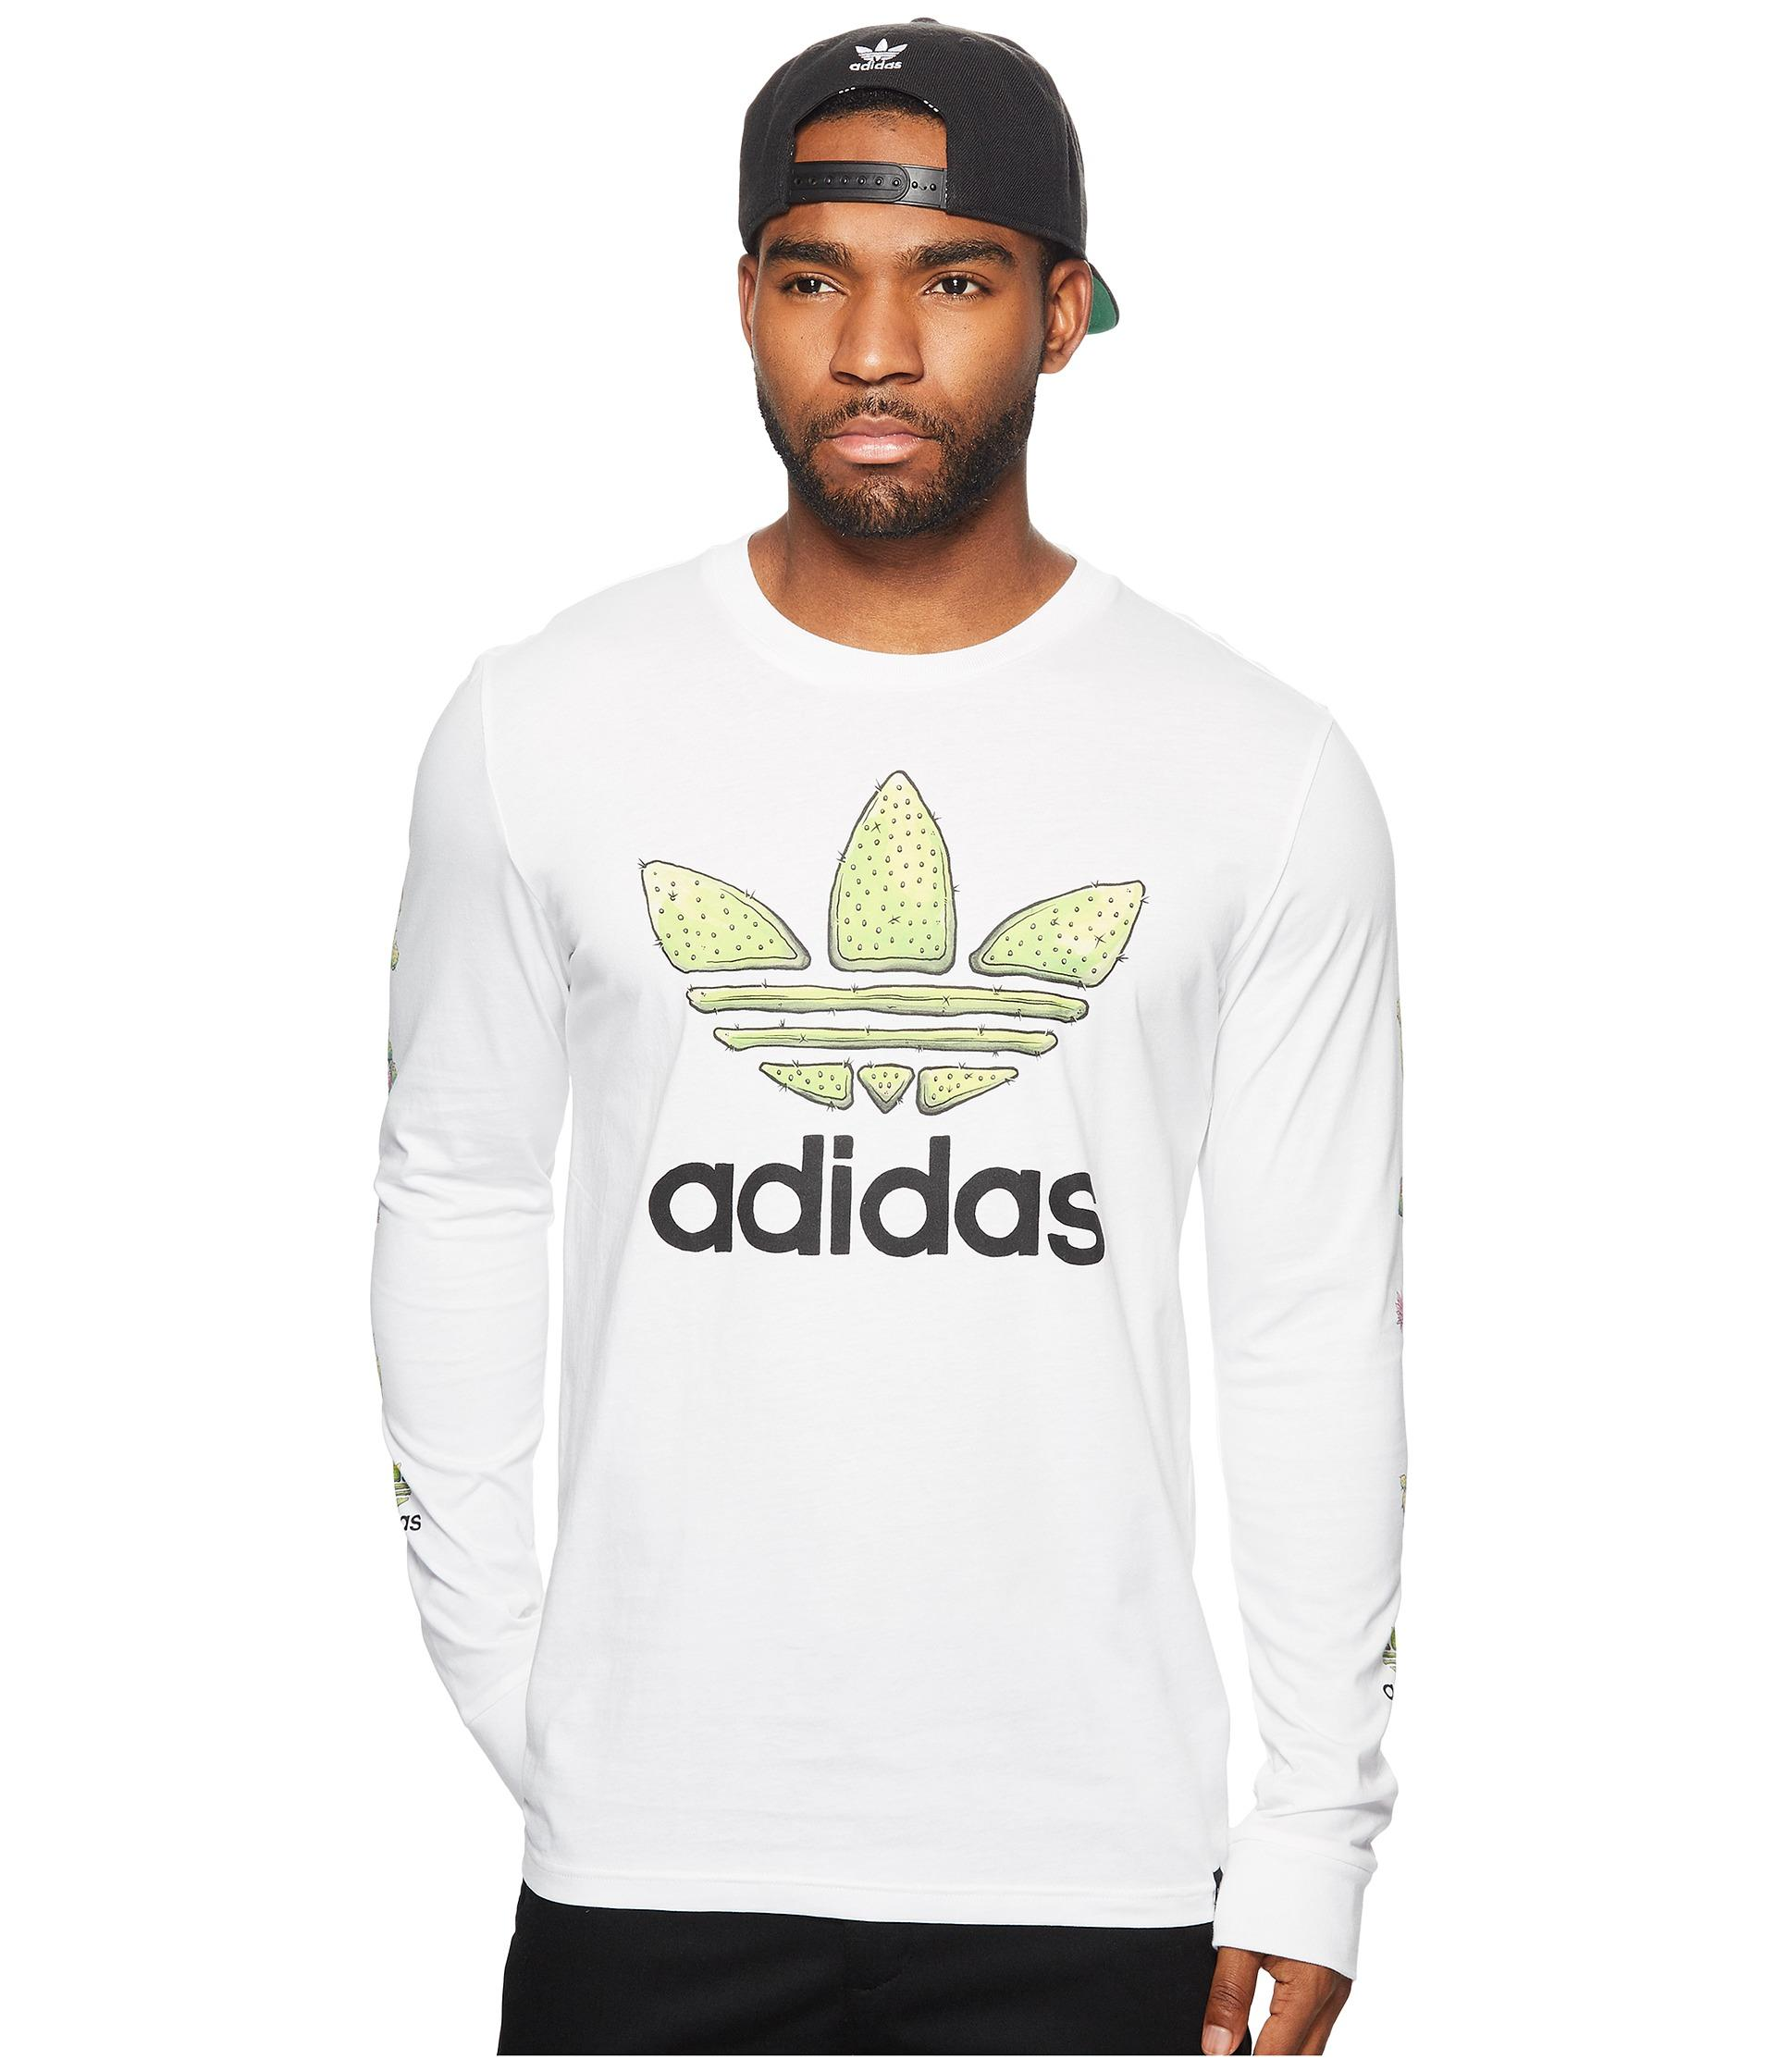 c08e5e60887e adidas Originals Cactus Long Sleeve Tee in White for Men - Lyst